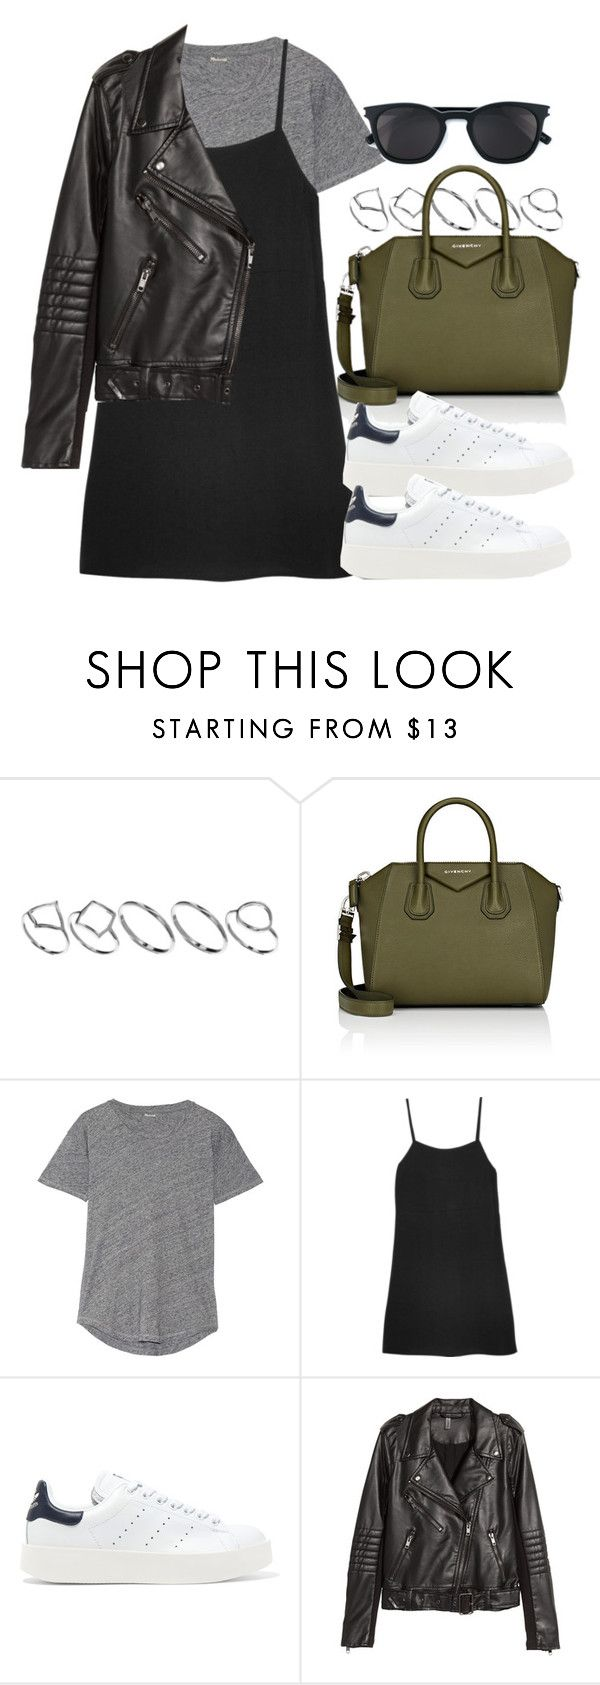 """Sin título #12015"" by vany-alvarado ❤ liked on Polyvore featuring ASOS, Givenchy, Madewell, Reformation, adidas Originals, H&M and Yves Saint Laurent"